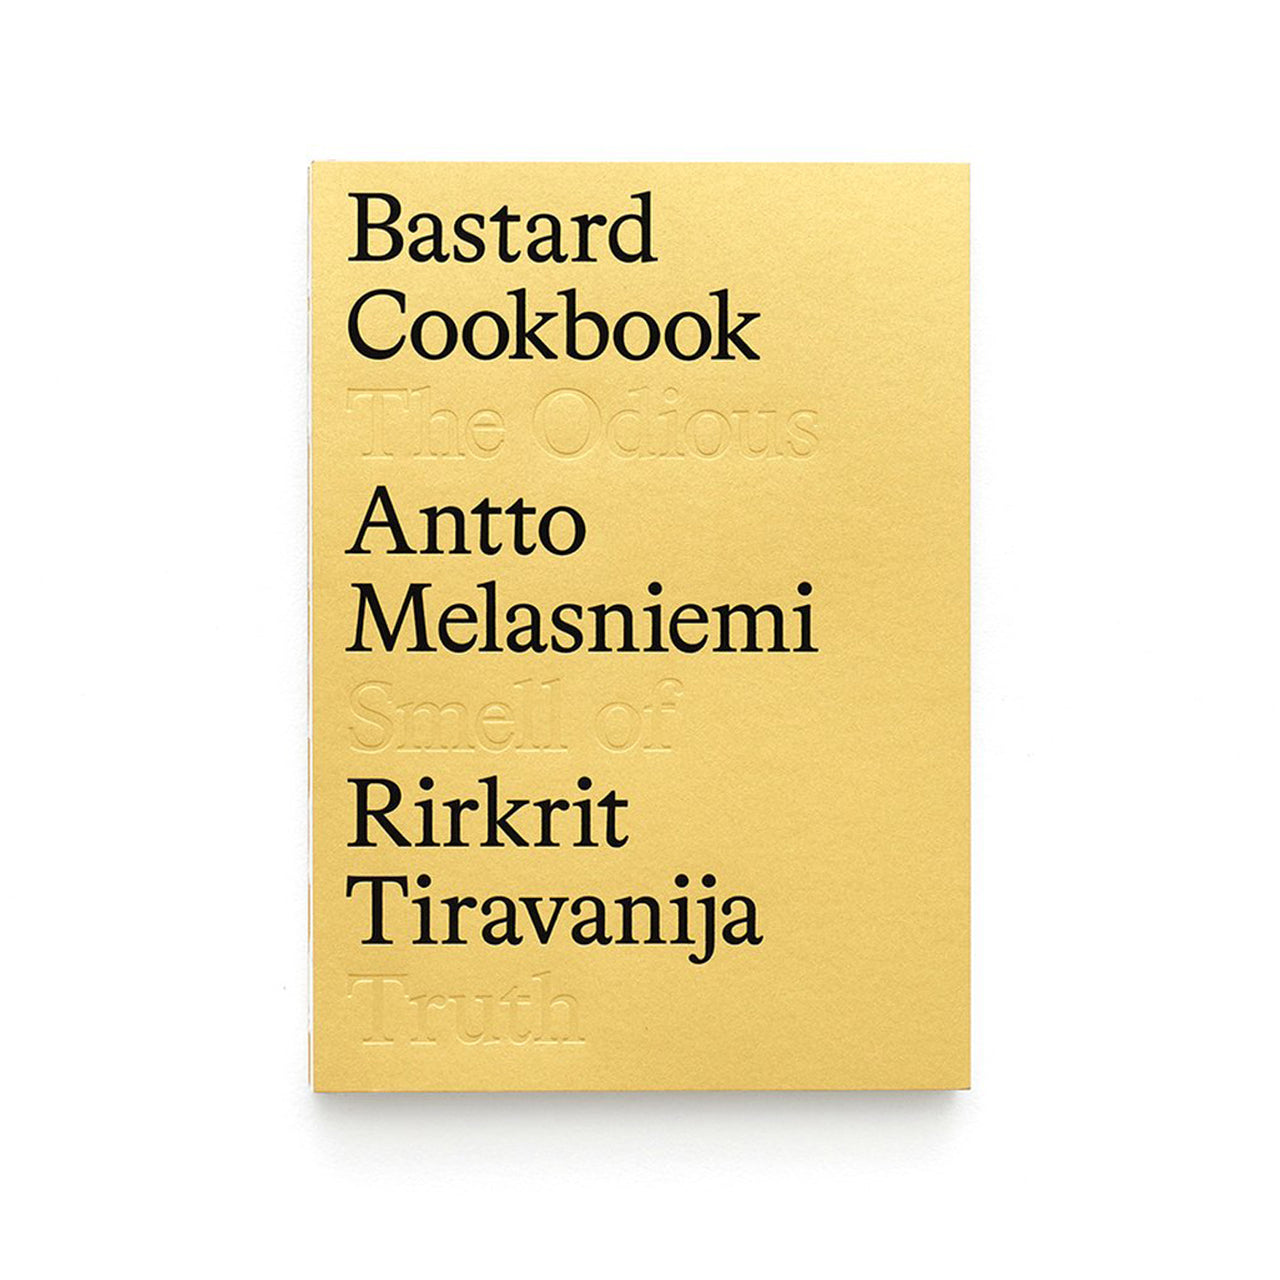 Bastard Cookbook: The Odious Smell of Truth by Rirkrit Tiravanija & Antto Melasniemi